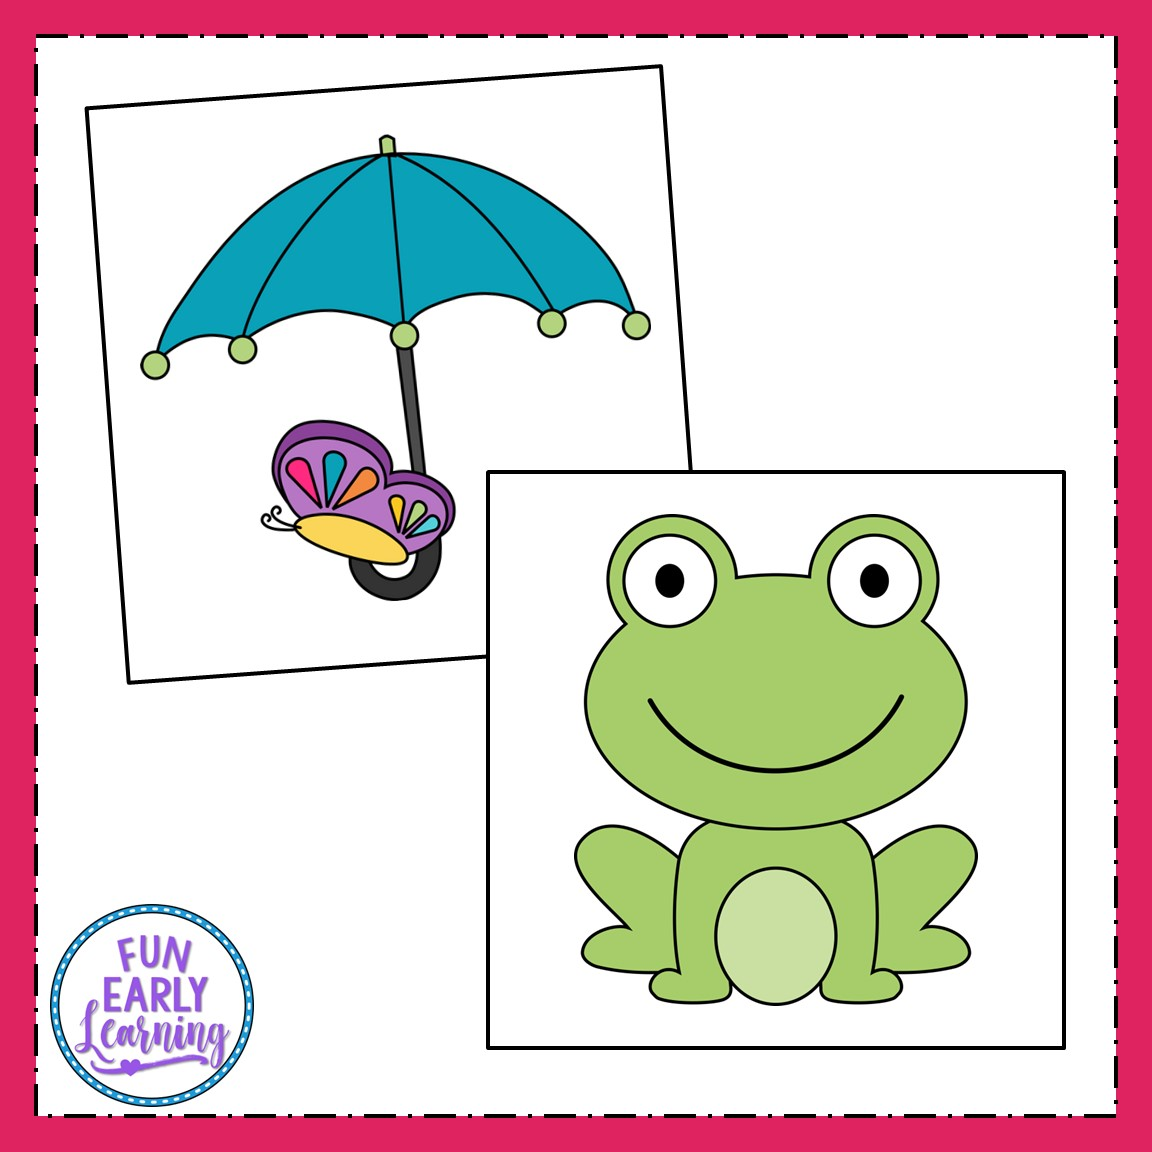 image about Printable Kid Crafts known as Spring Crafts - Flower Pot, Frog, Kite, and Umbrella with